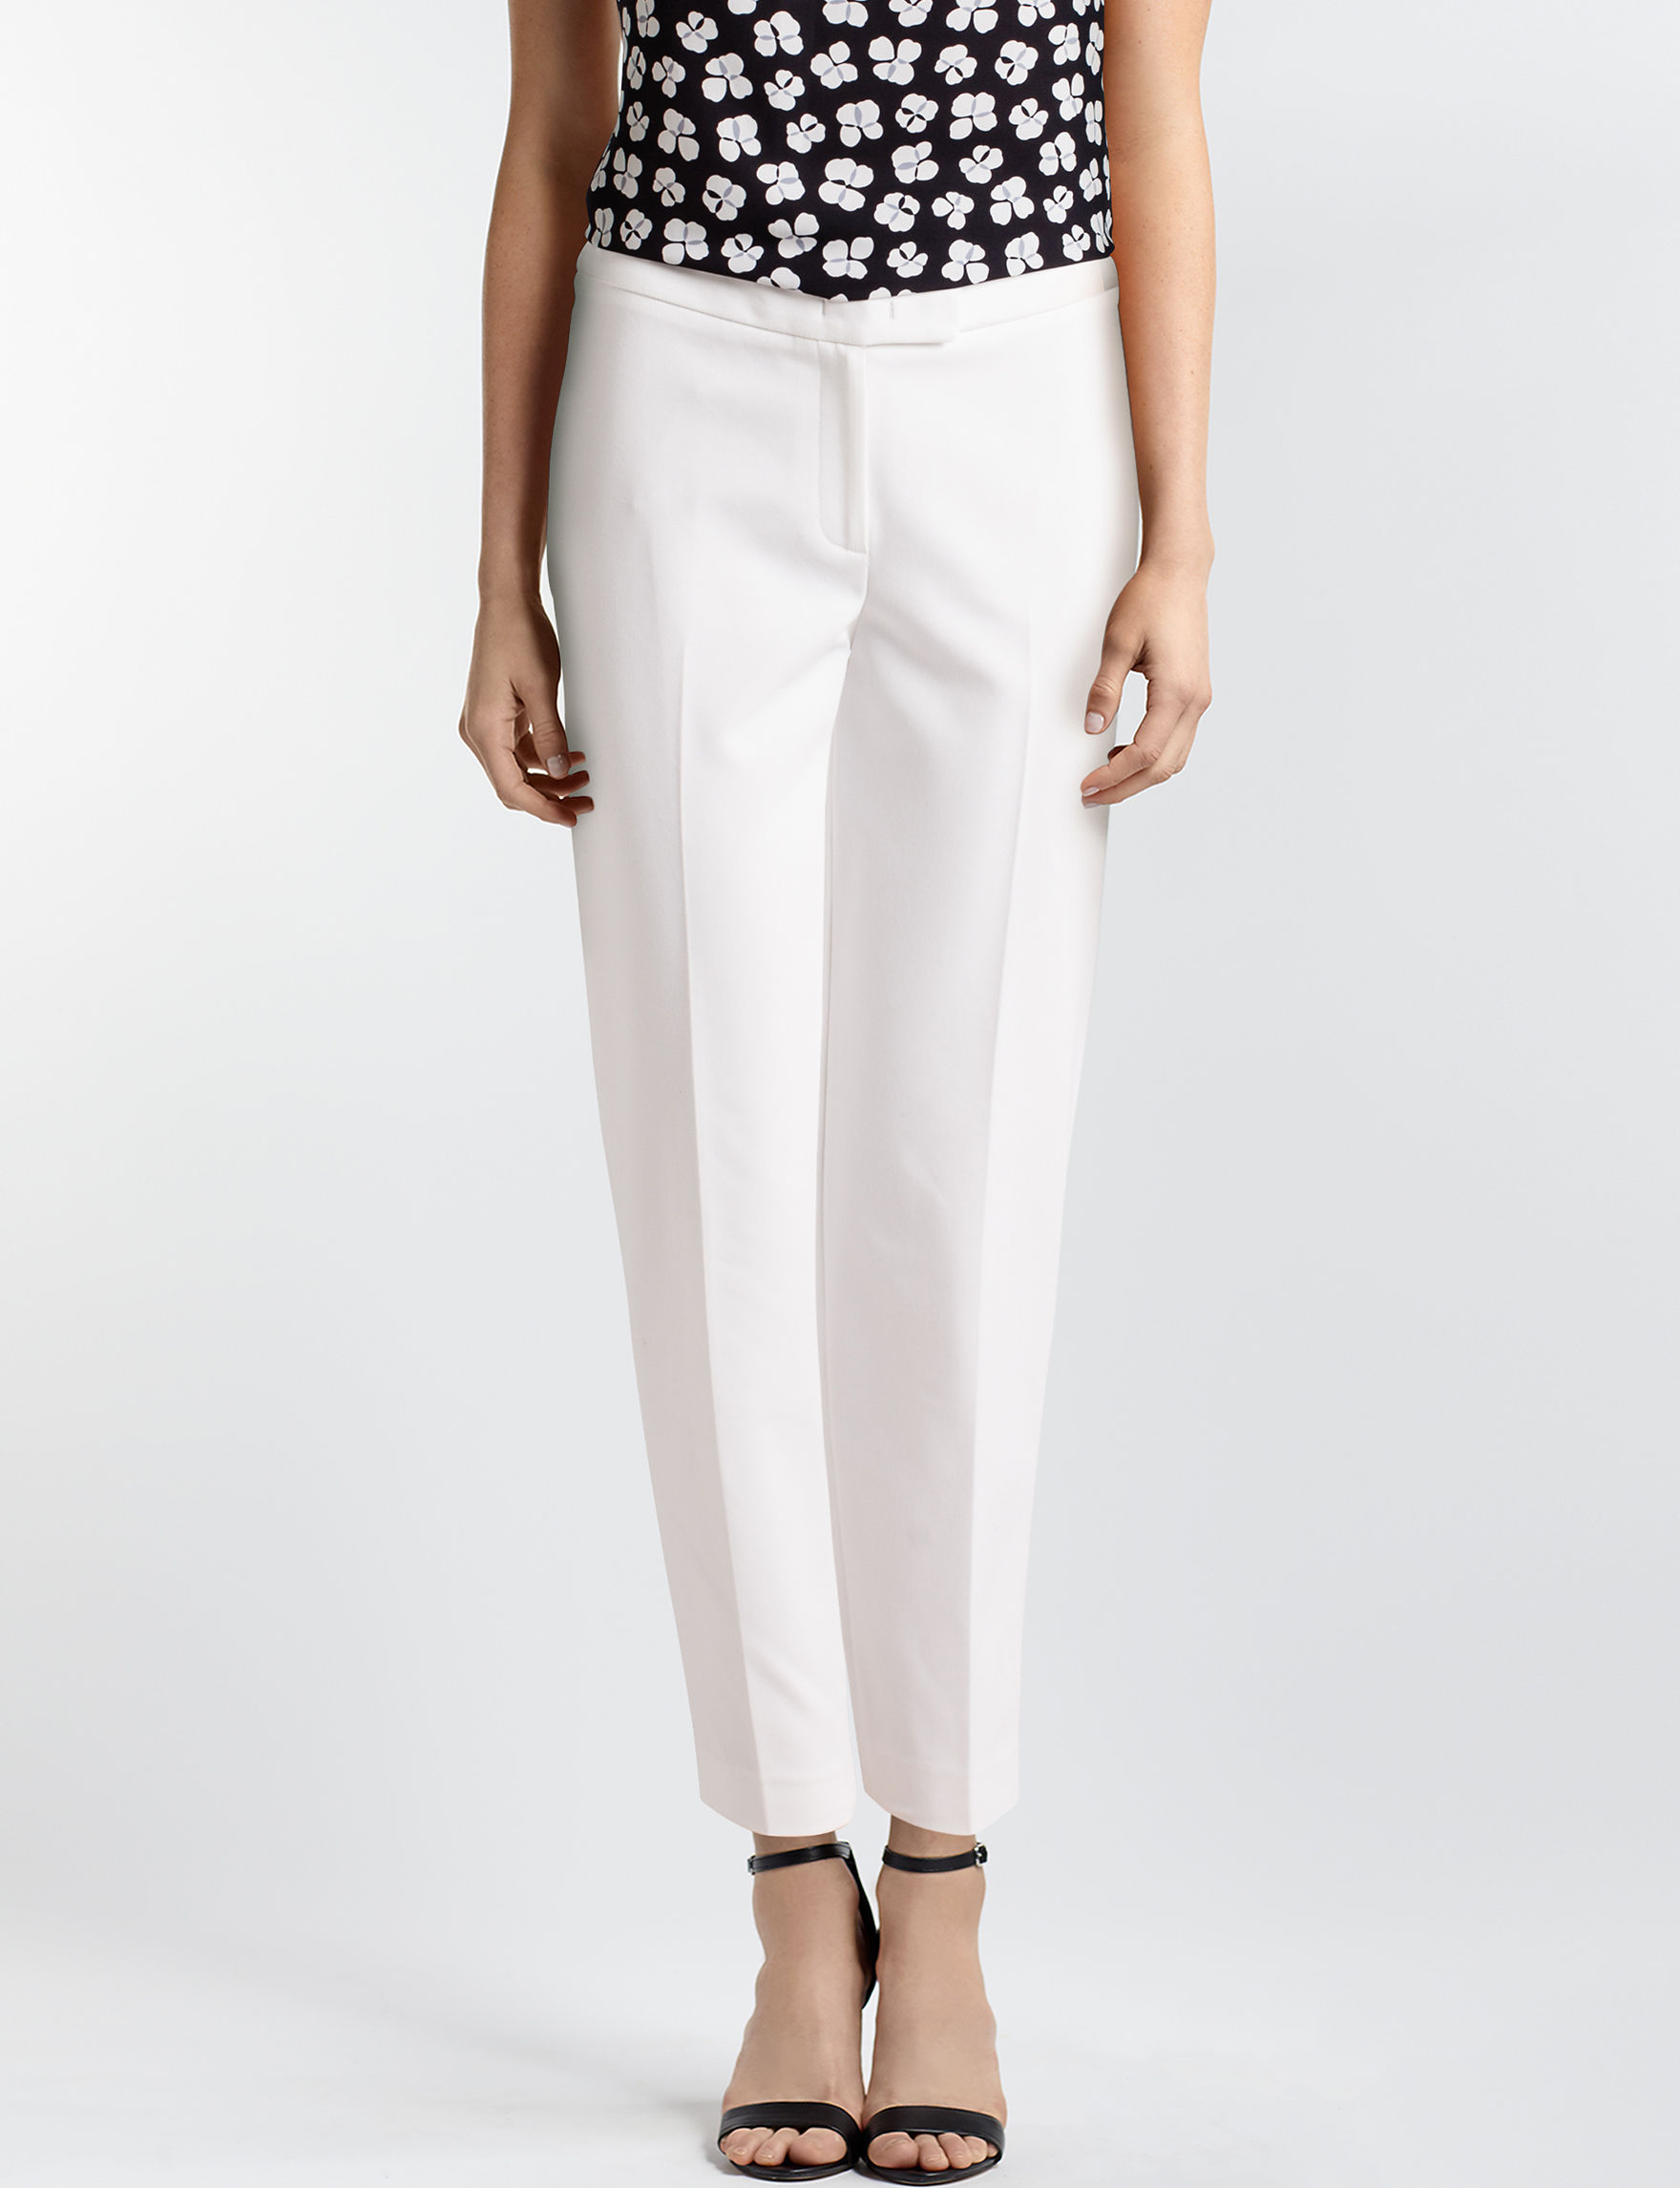 Anne Klein White Soft Pants